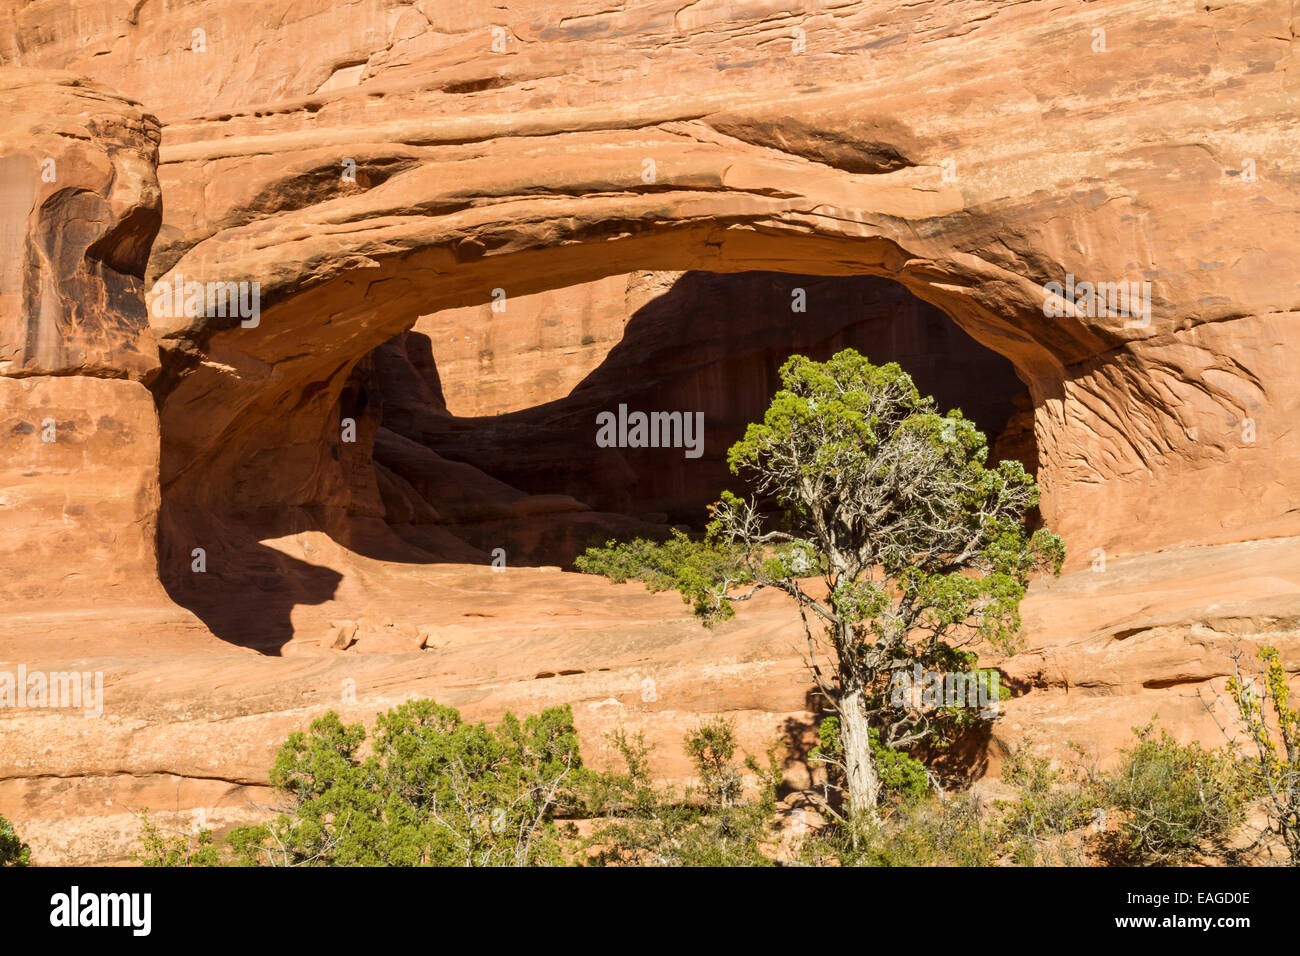 Tower Arch in the Klondike Bluffs area of Arches National Park, Utah. - Stock Image